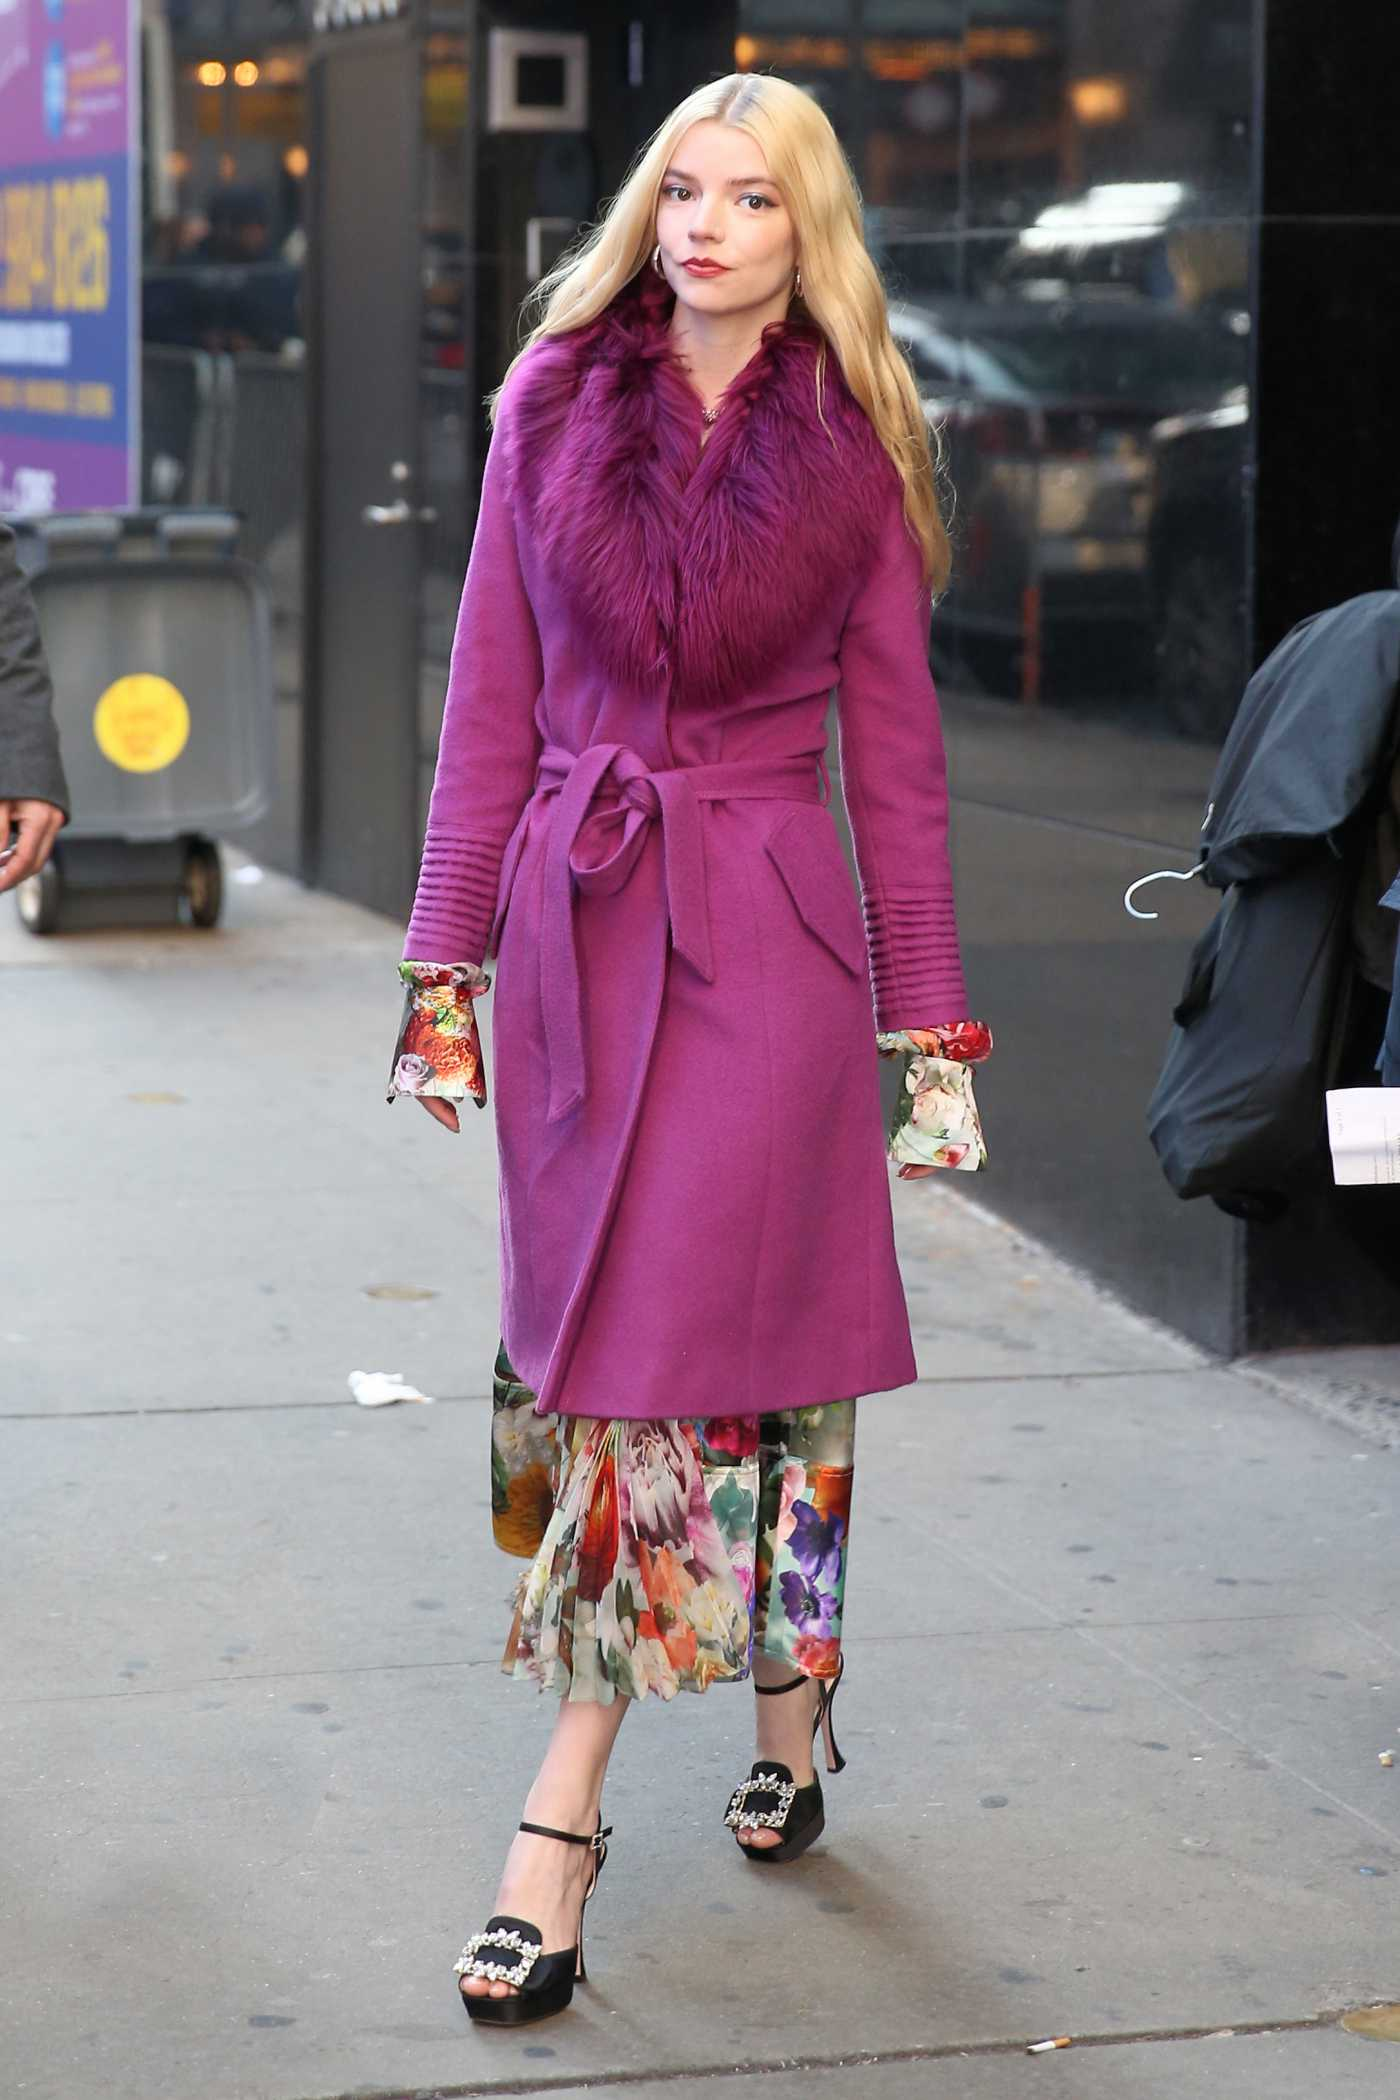 Anya Taylor-Joy in a Purple Coat Leaves Good Morning America in New York City 02/17/2020